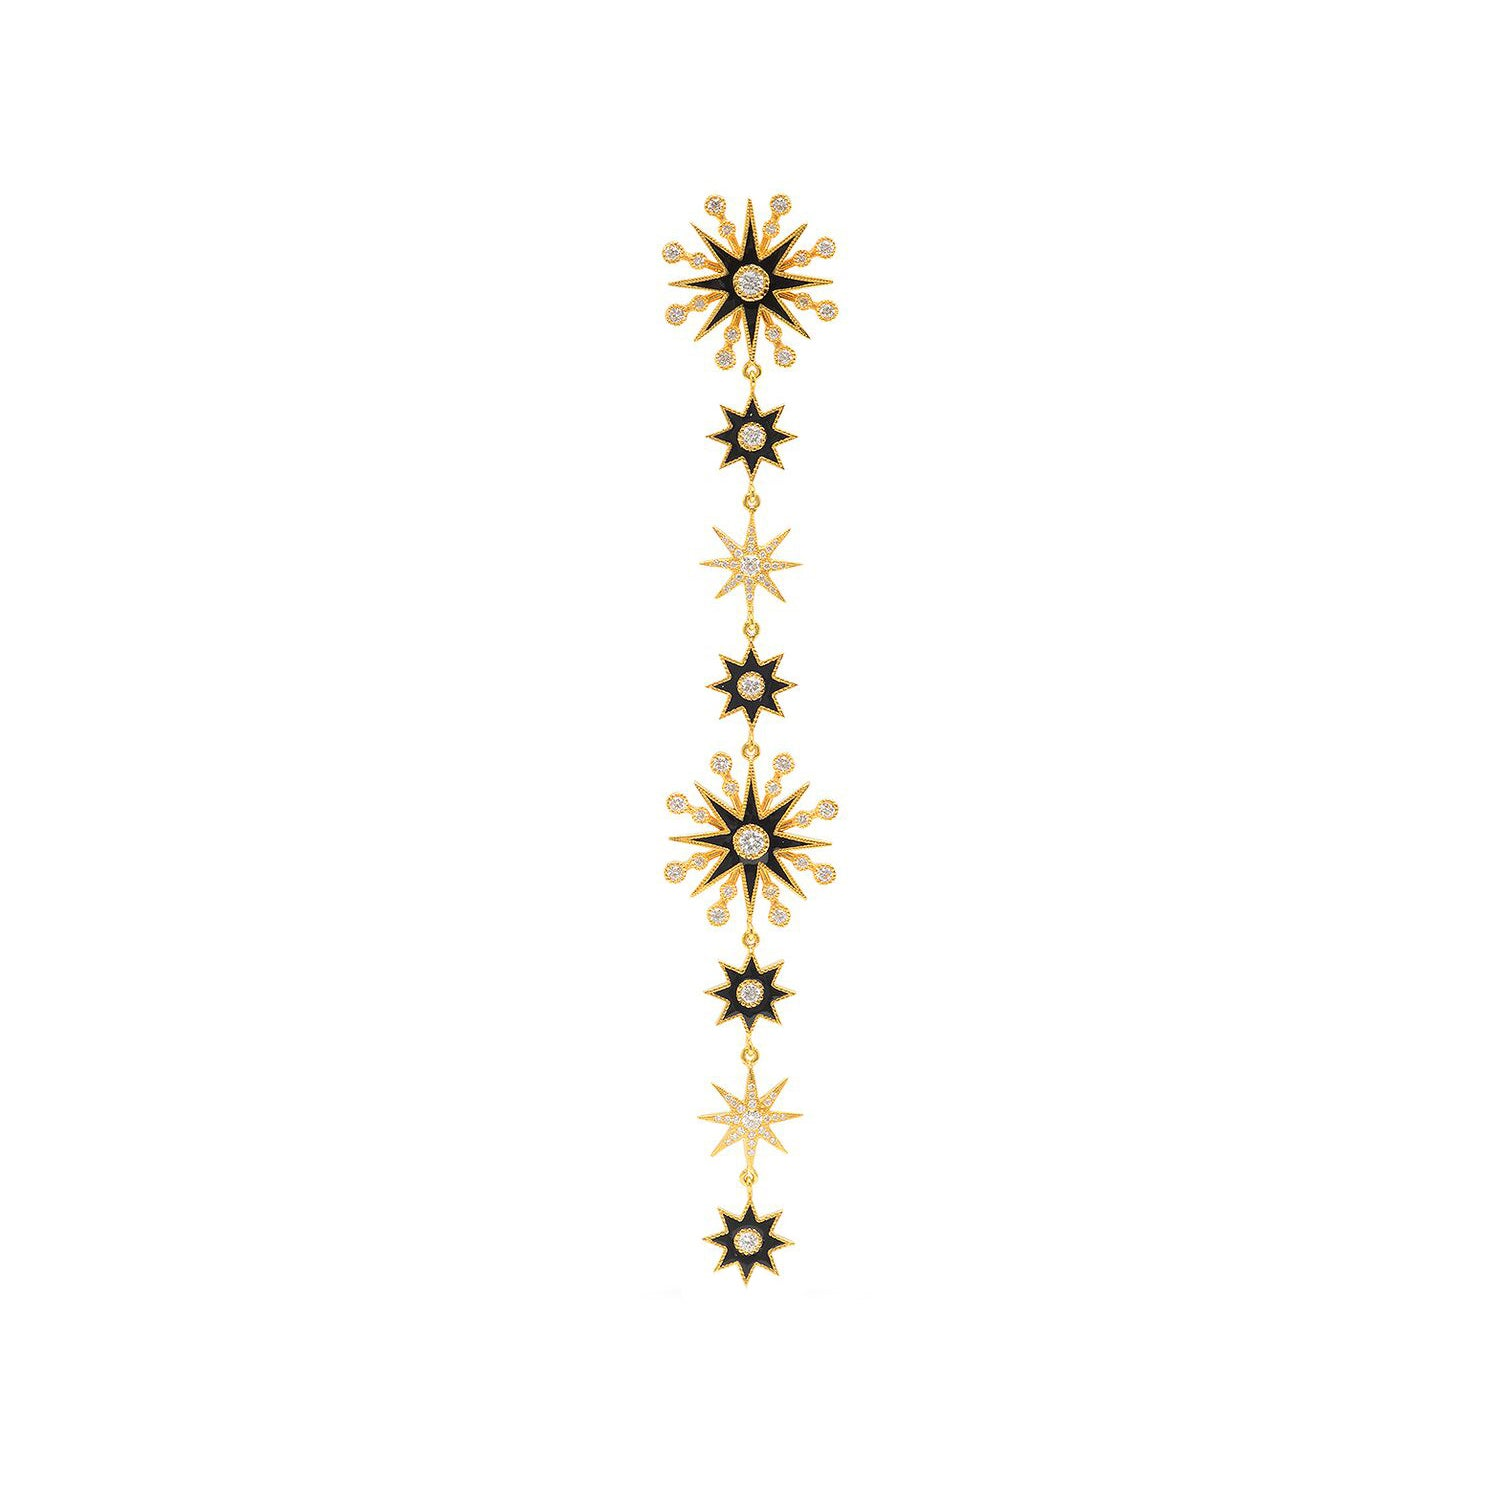 Black Star Duster by Colette for Broken English Jewelry